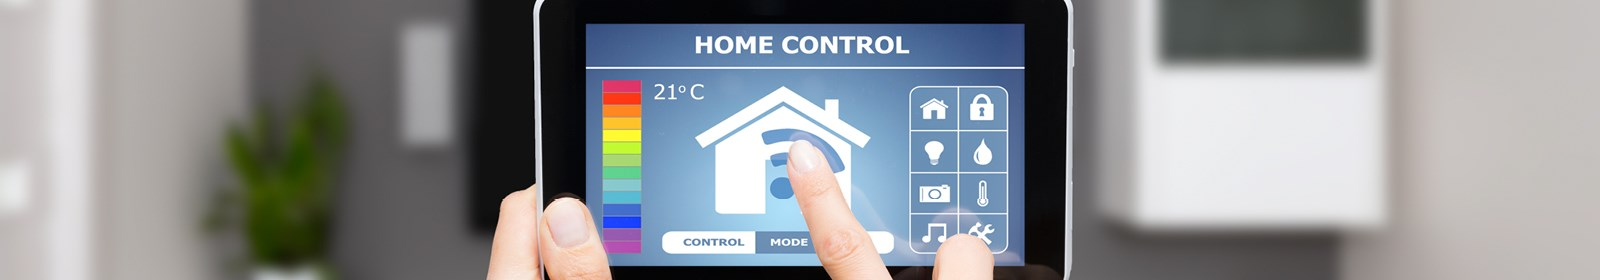 Ensuring safety and security in your home